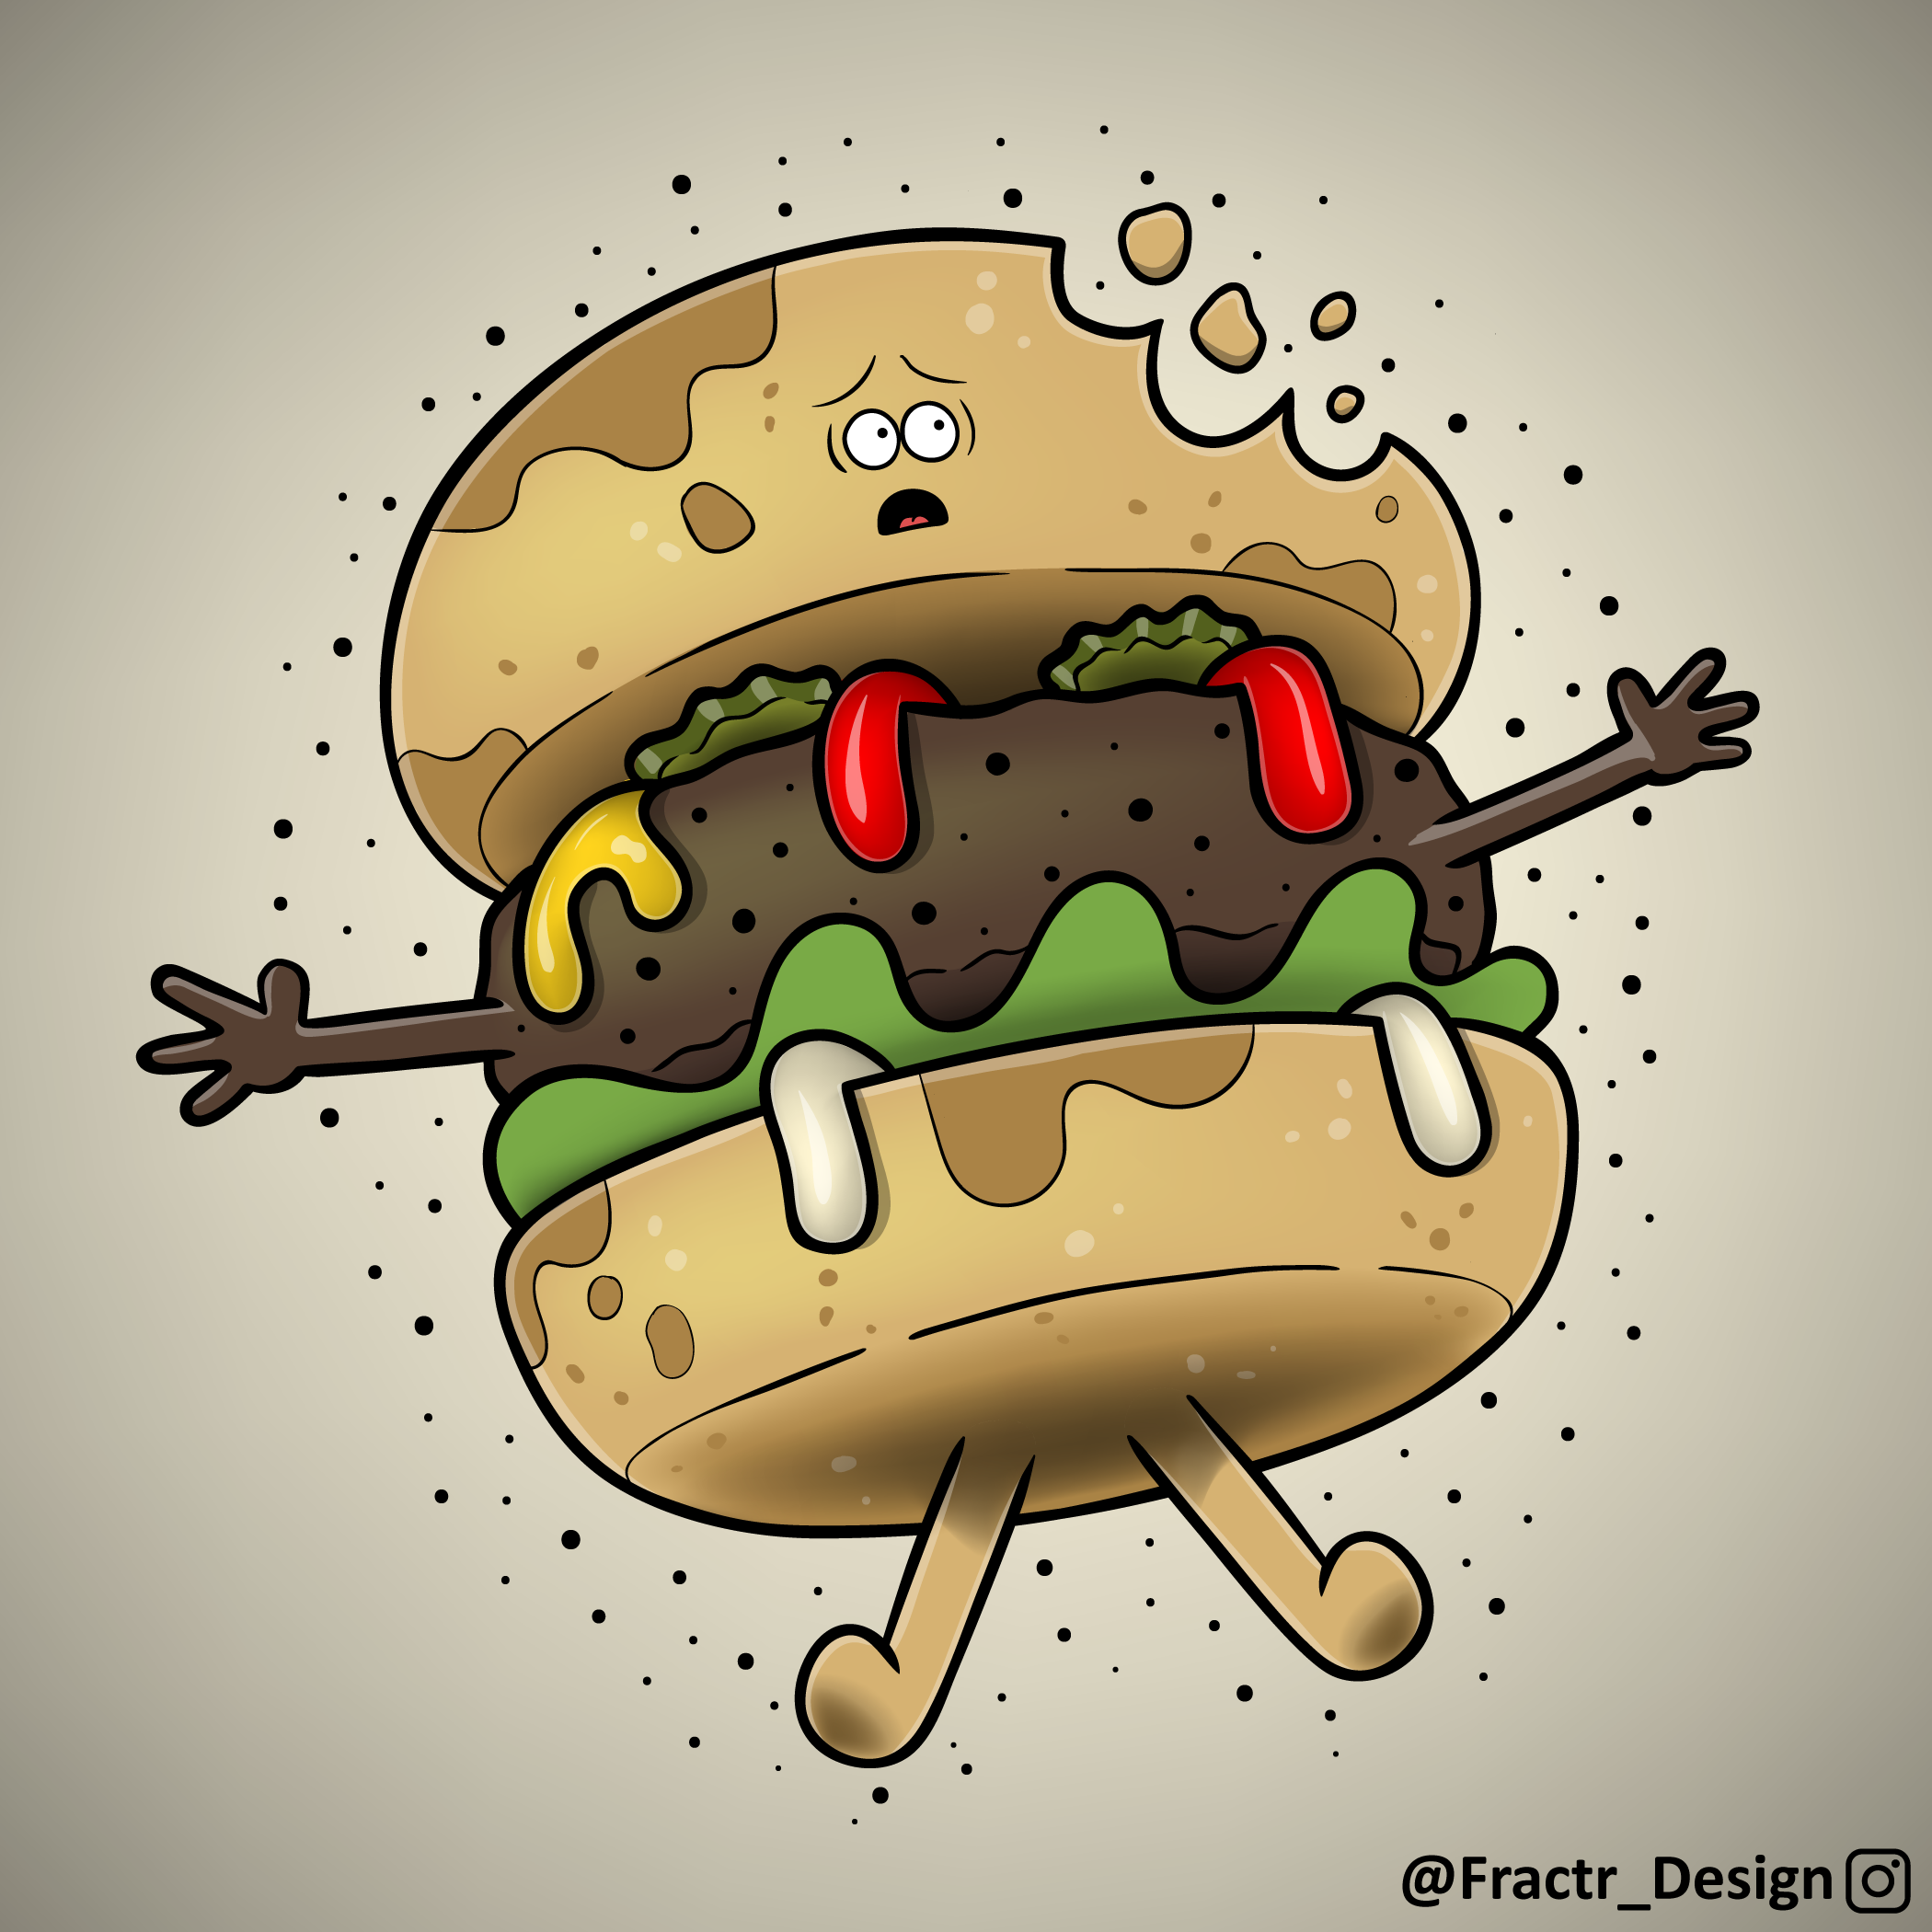 Burger Party! A cute illustration I made of my favorite food